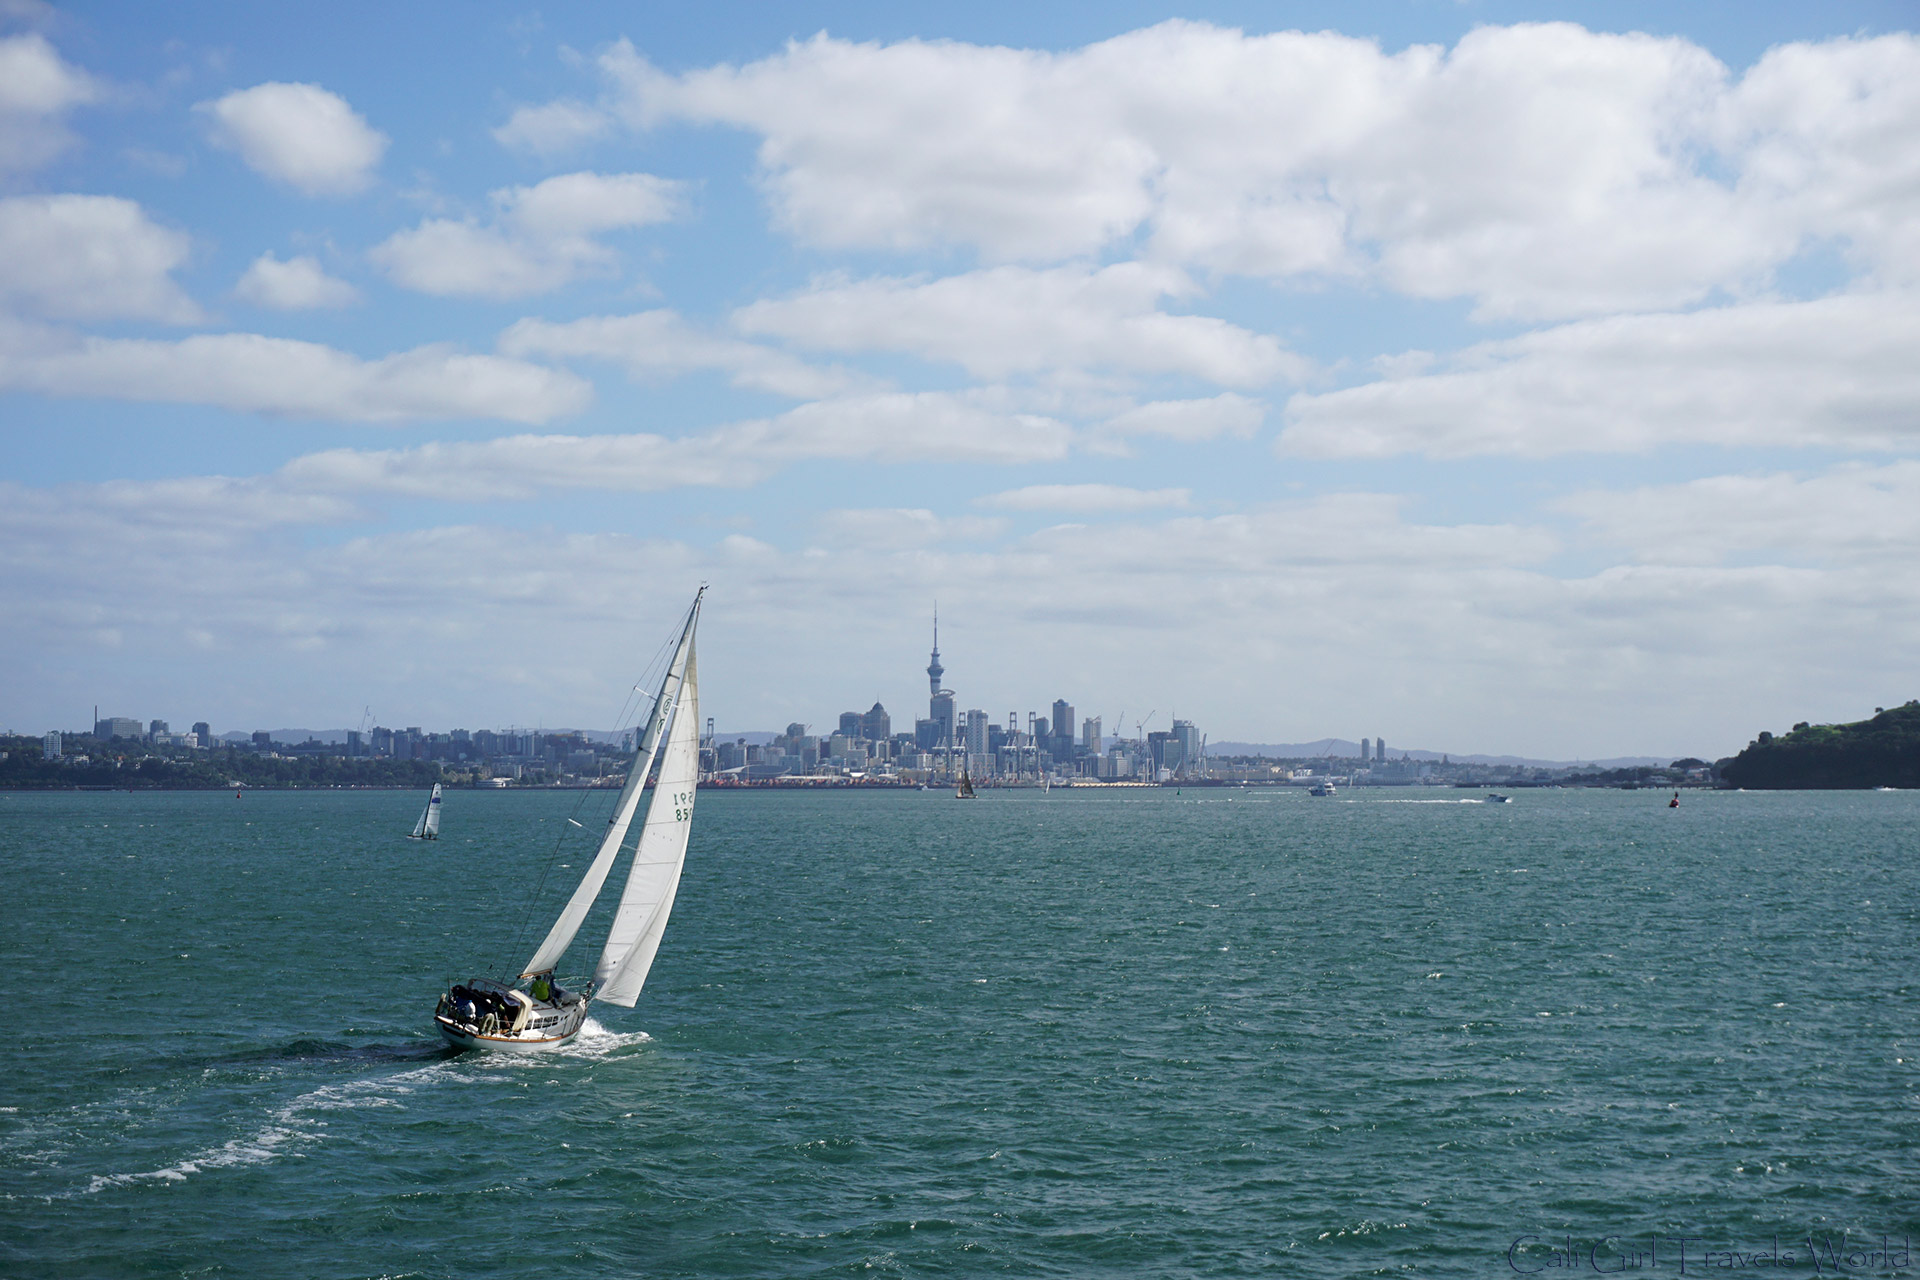 A view from our ship of Auckland city with a boat sailing in front, in the North Island of New Zealand.